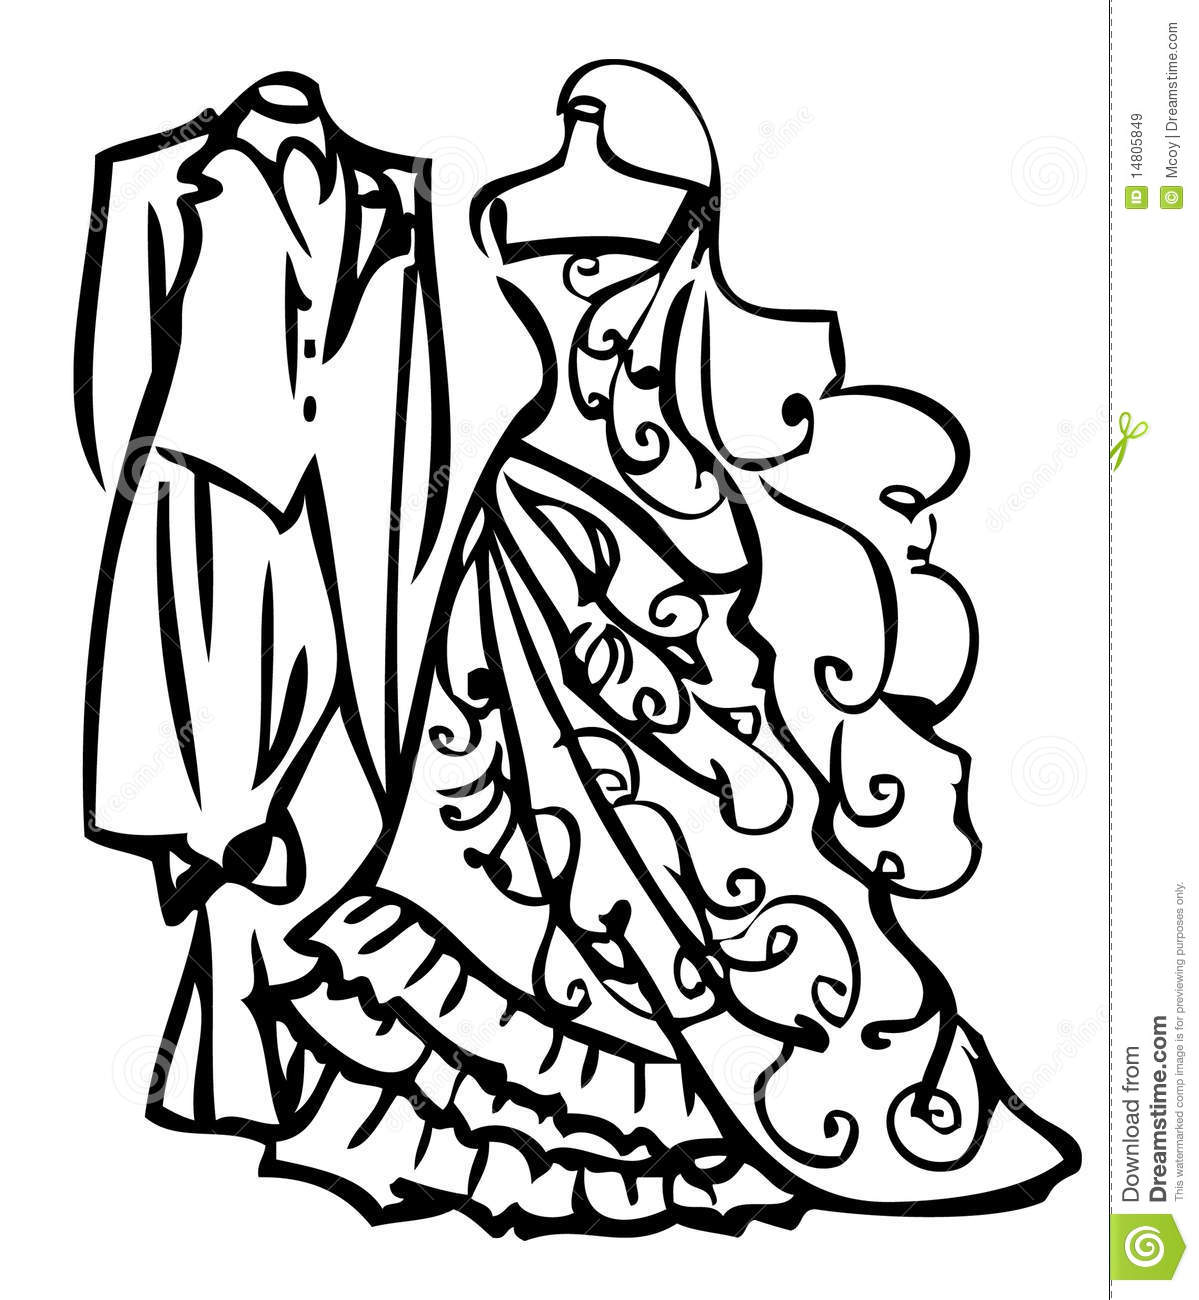 Couple wedding dress white and black stock illustration